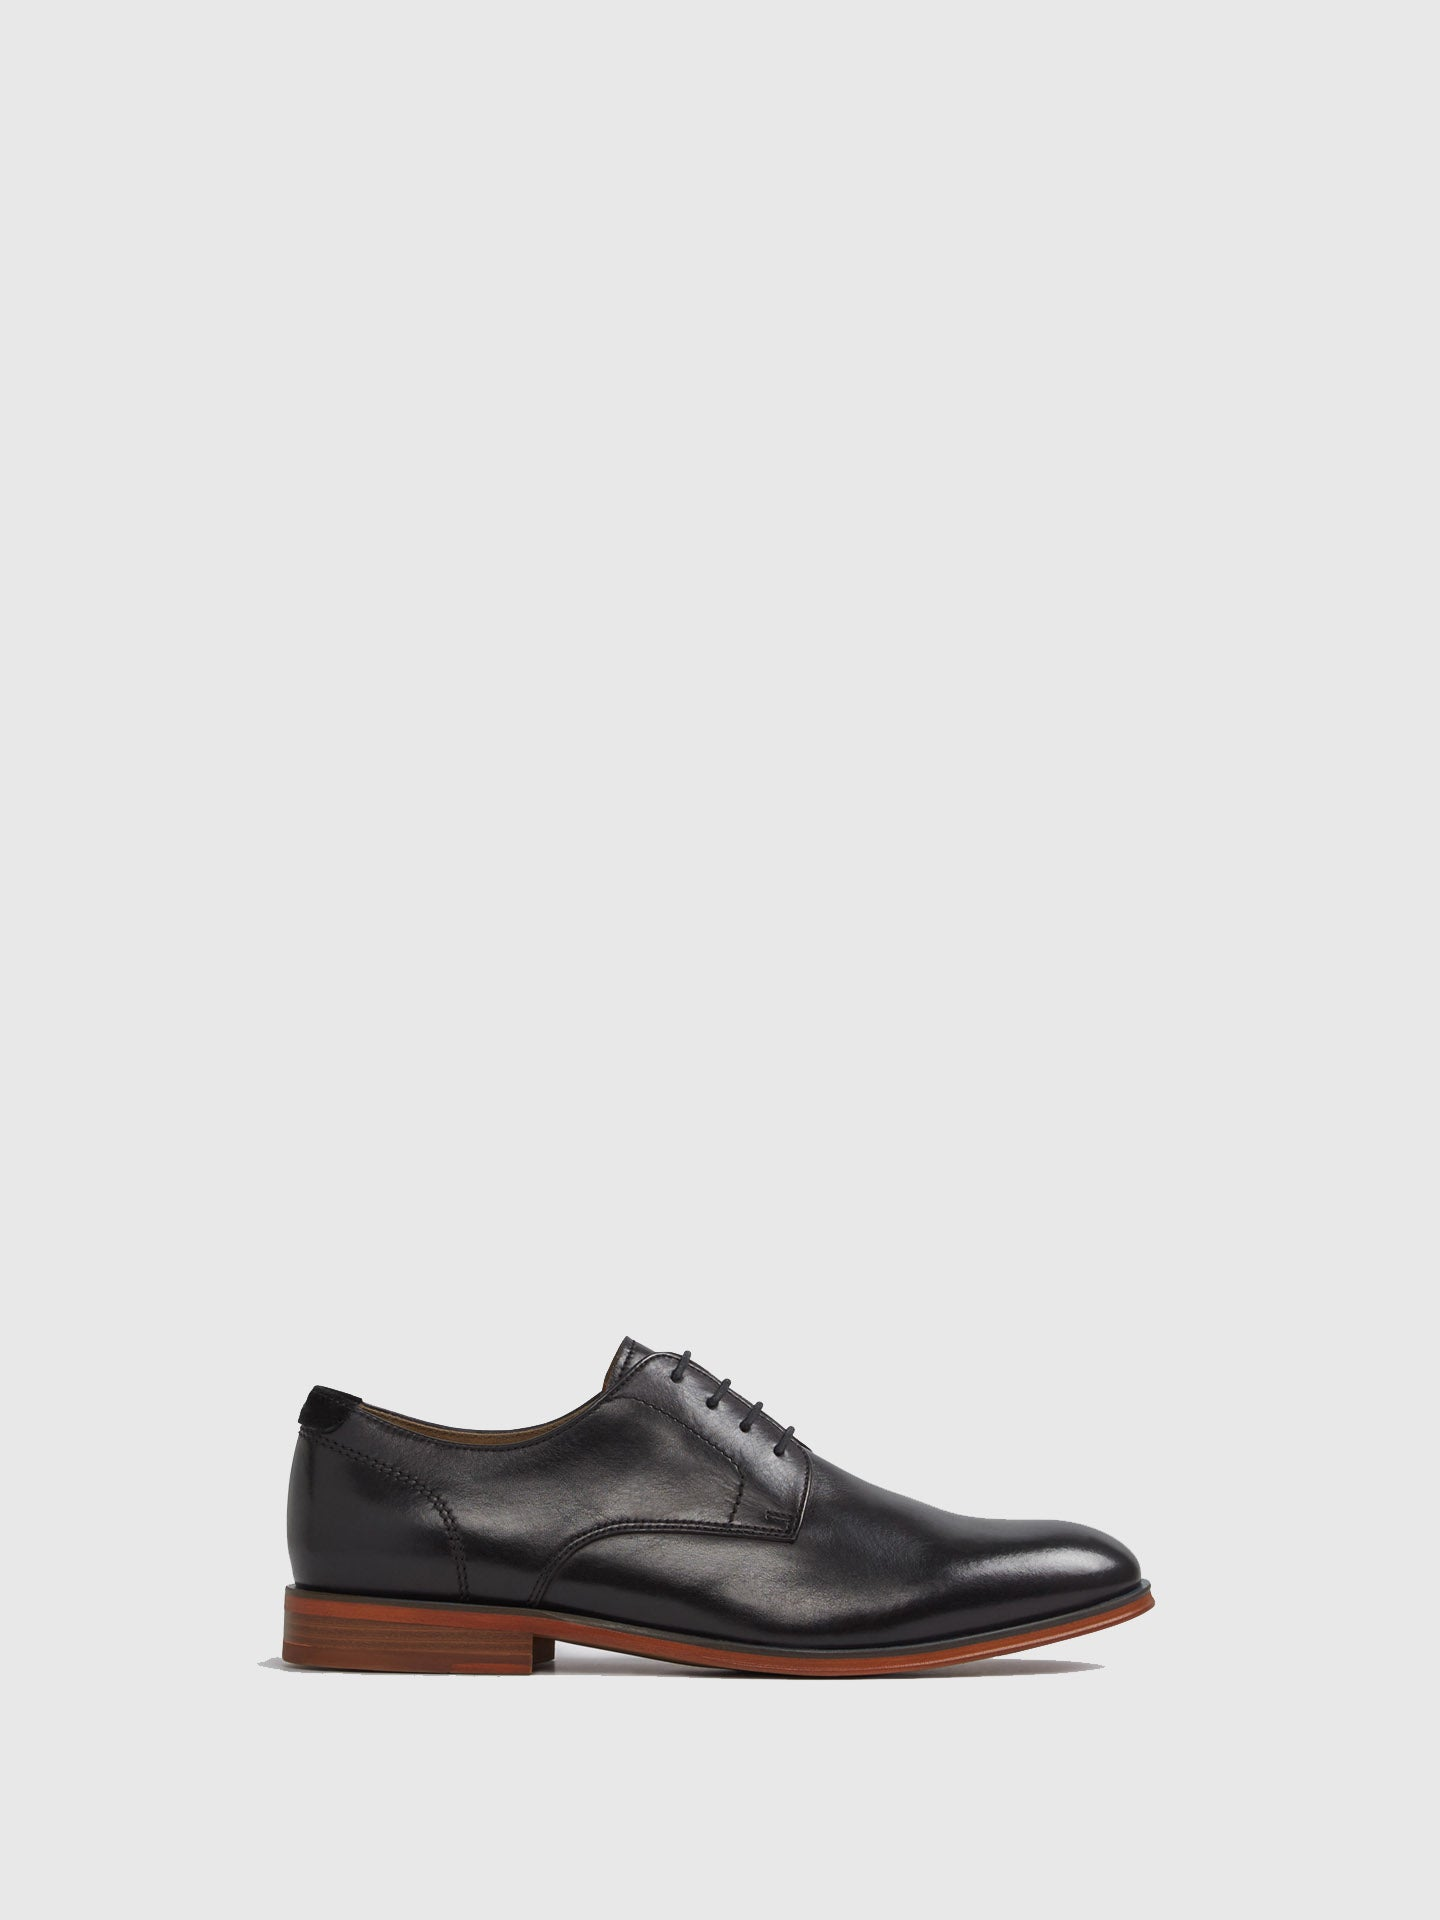 Aldo Black Derby Shoes